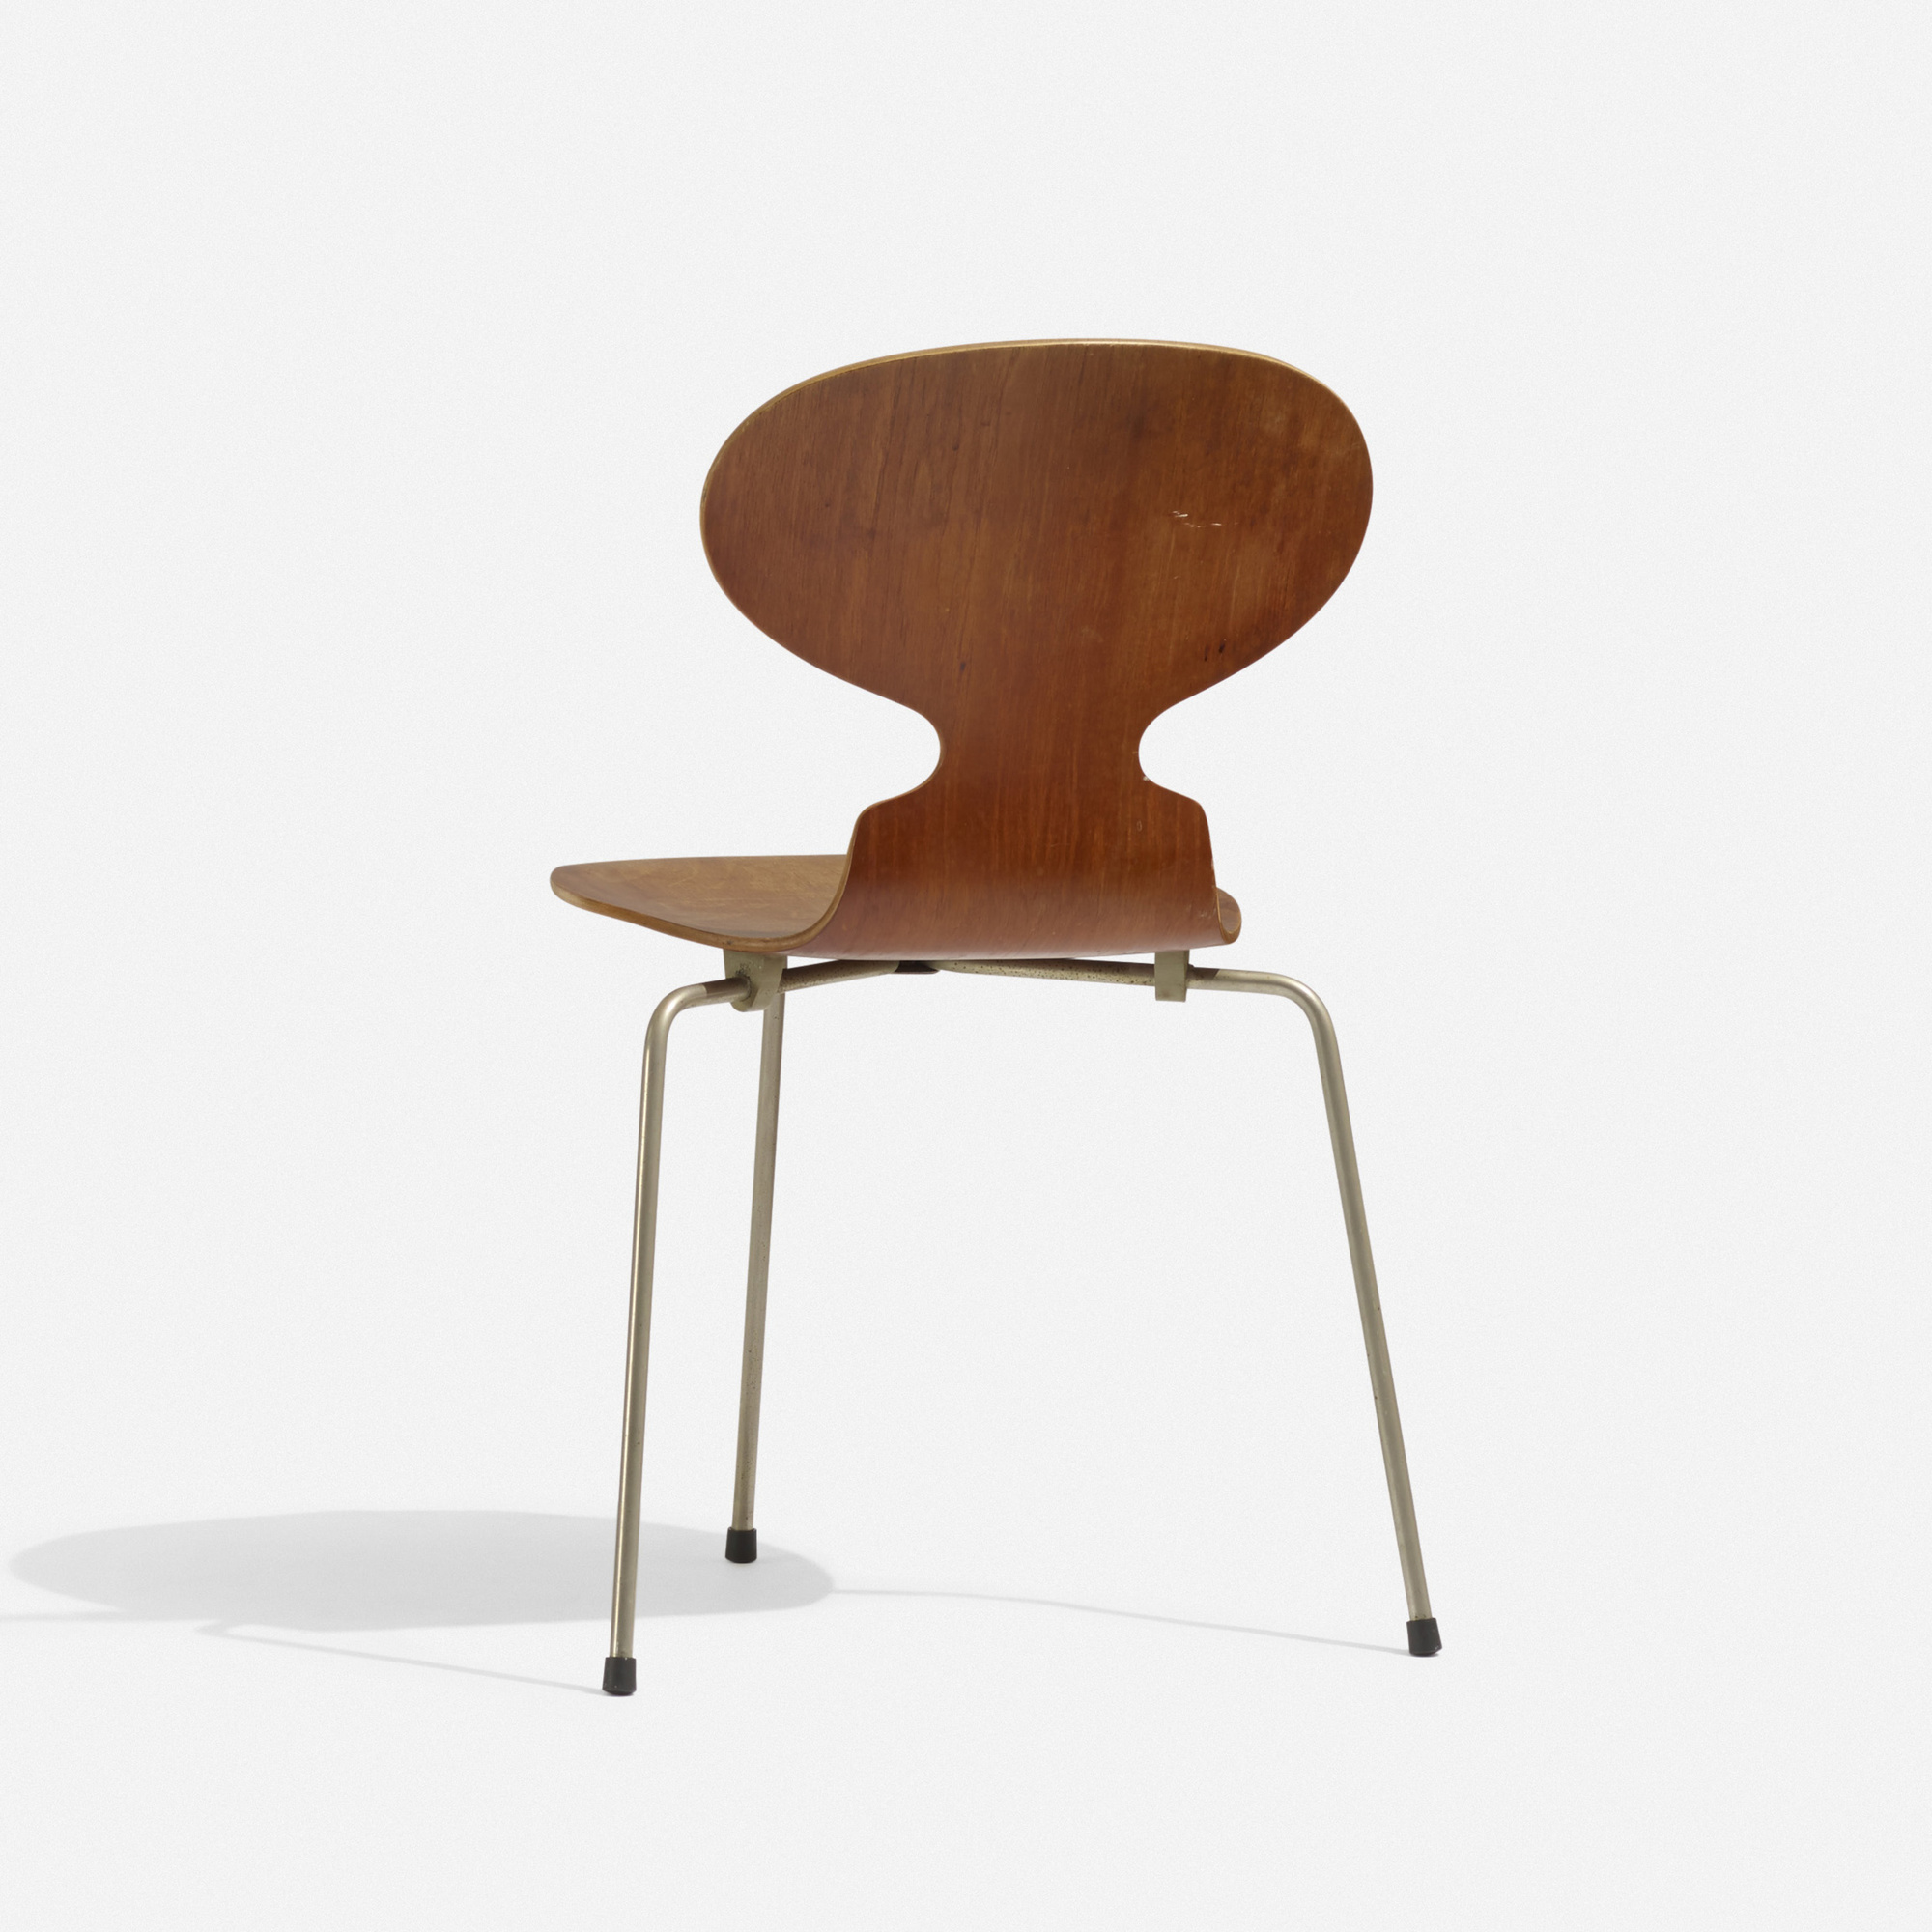 skandium chair designer walnut id oksen arne index designers jacobsen